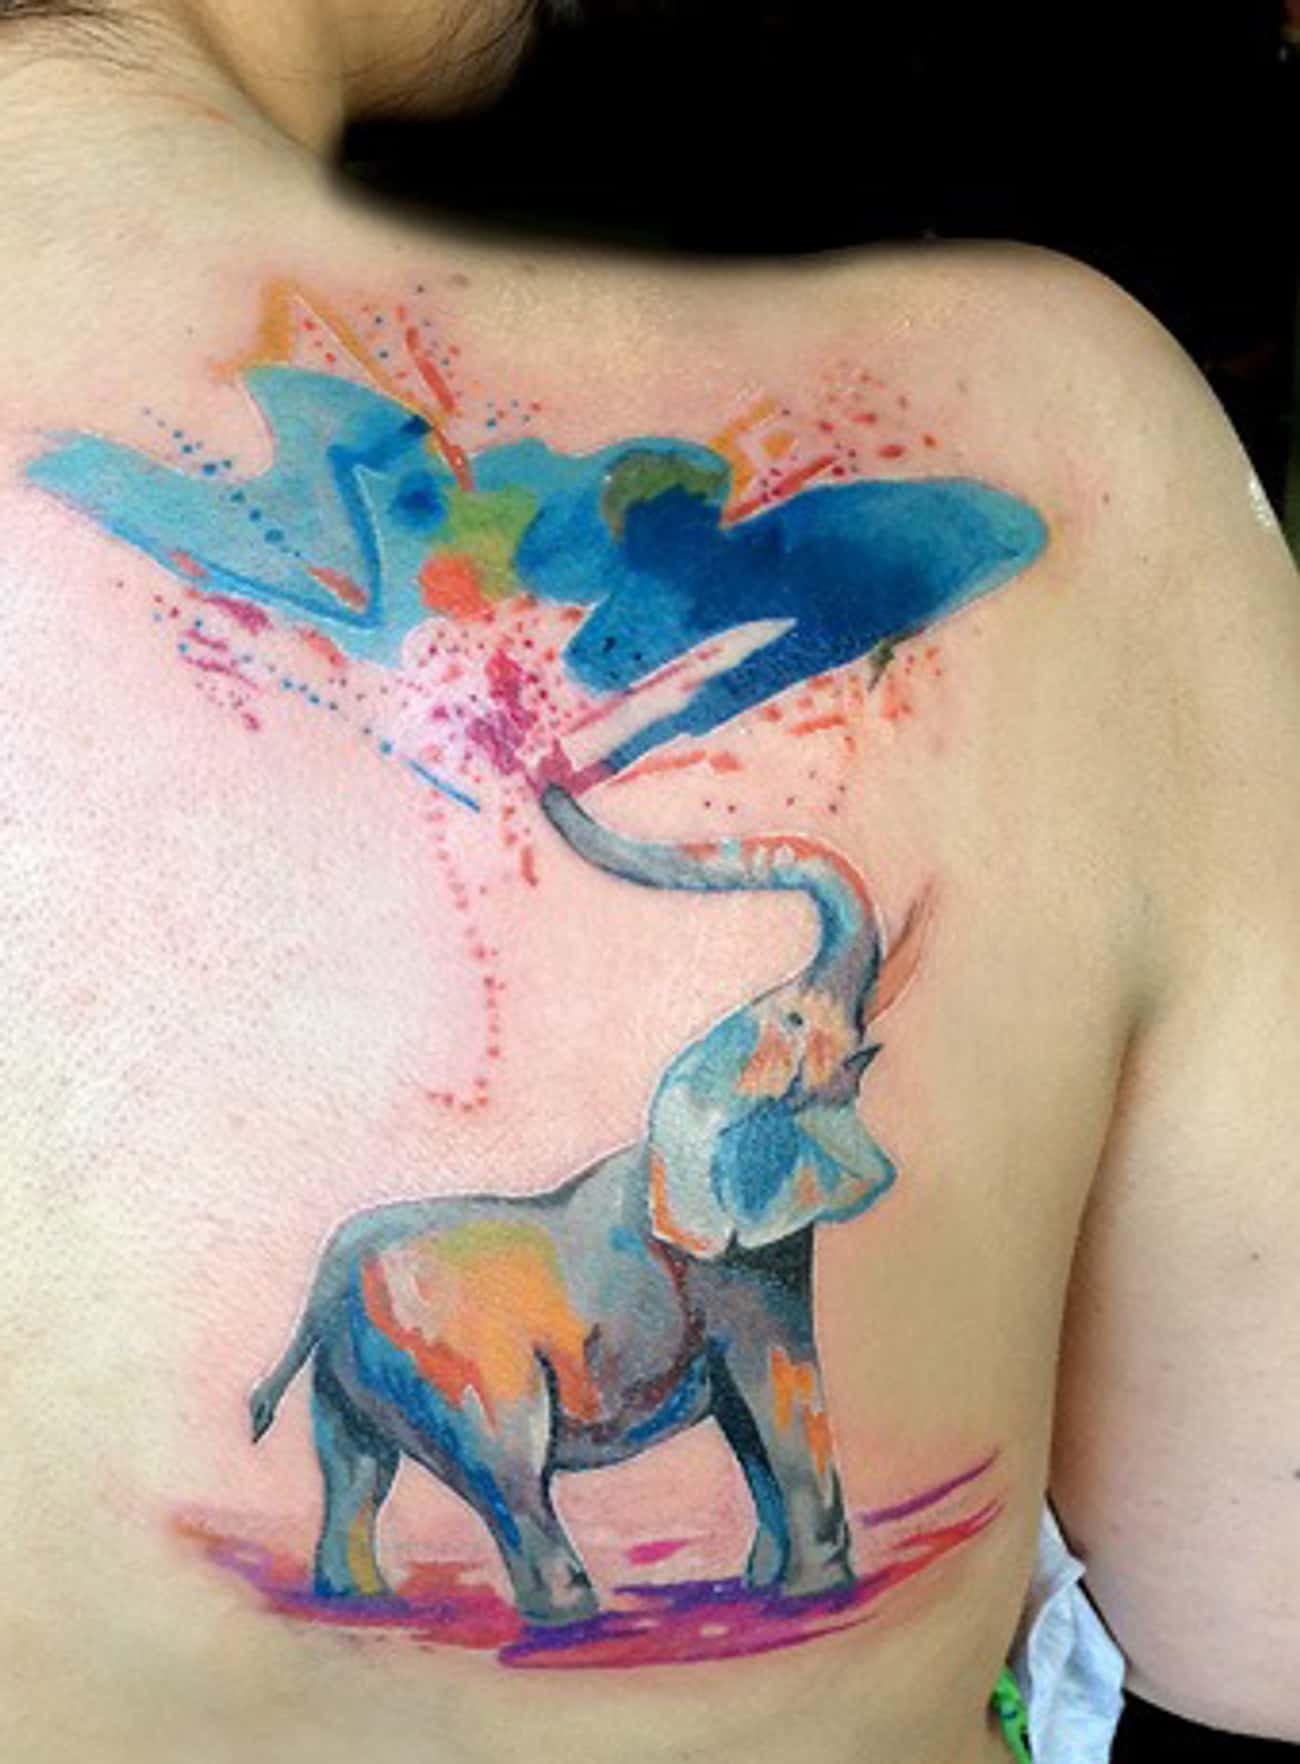 Standing Elephant Tattoo is listed (or ranked) 2 on the list Breathtaking Watercolor Tattoos You've Gotta See